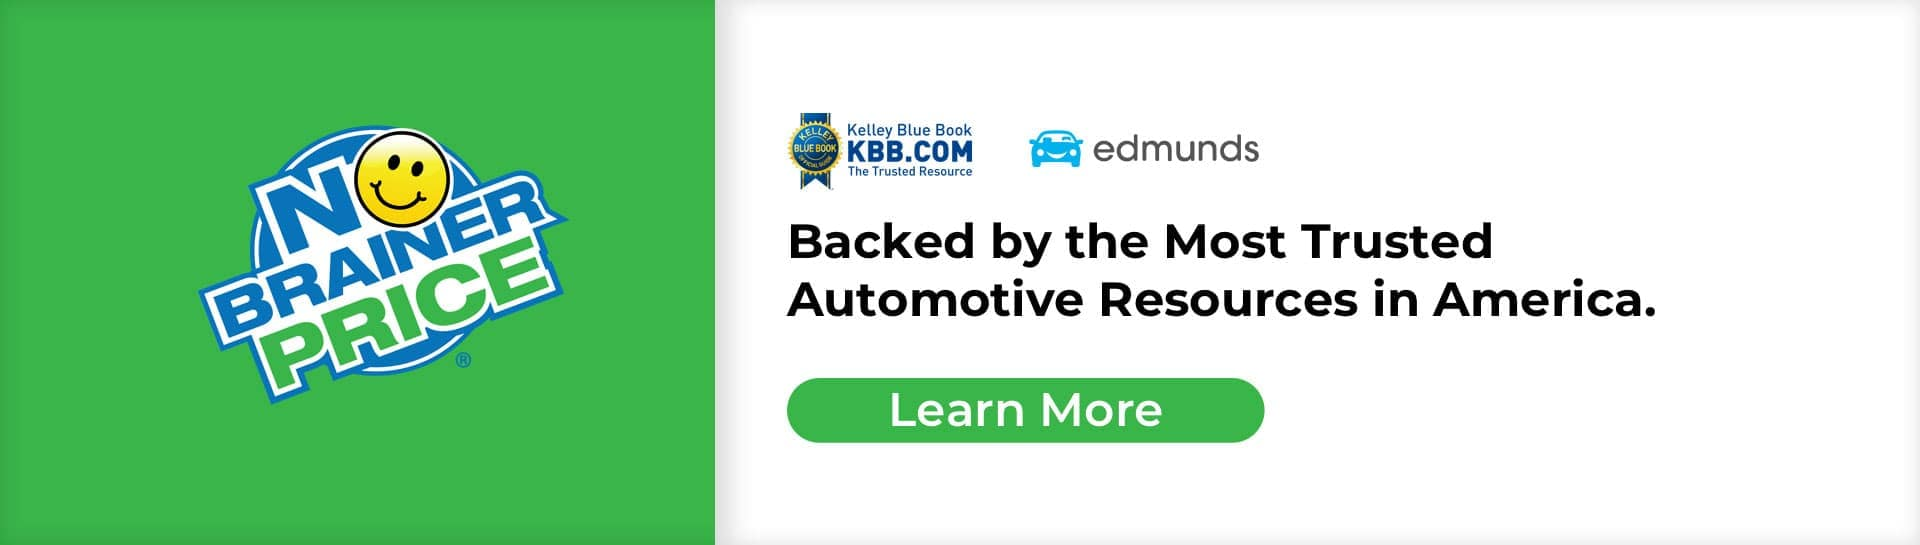 Back by the most trusted automotive resources in America Slider